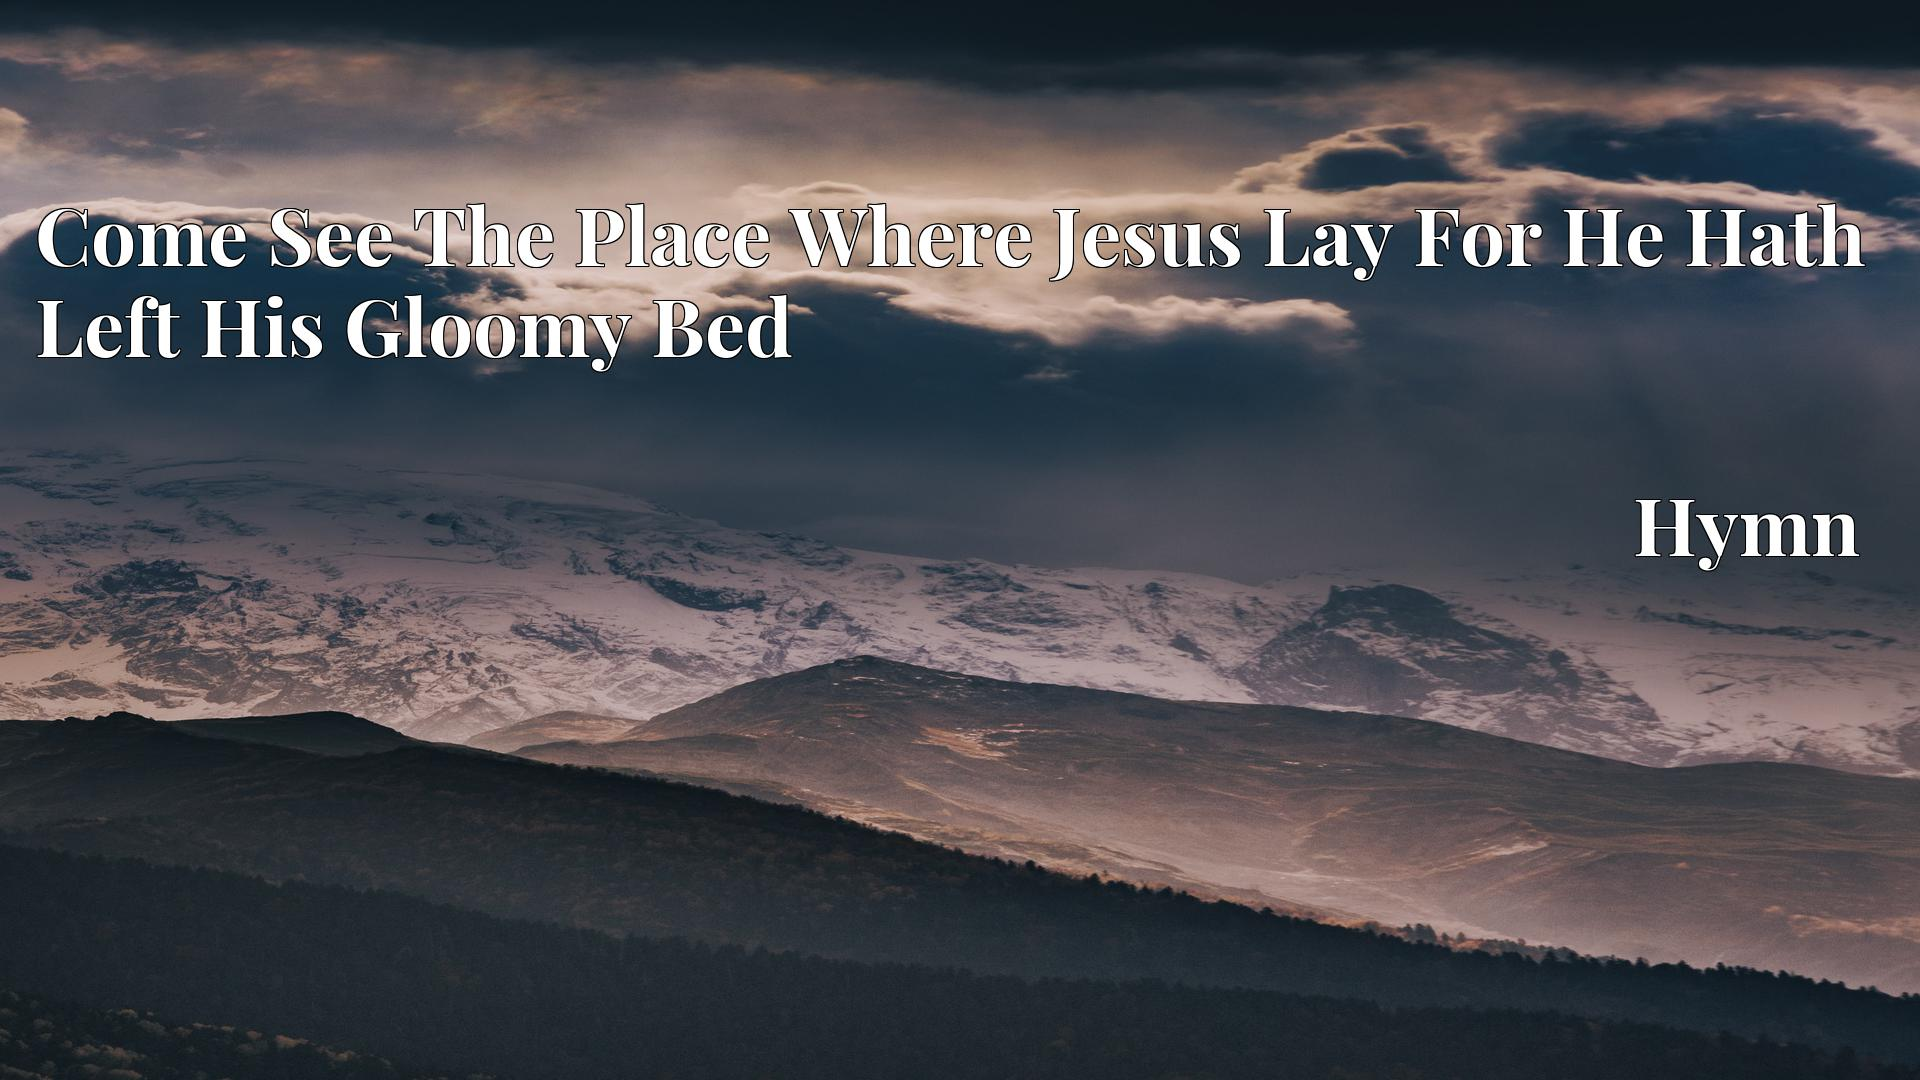 Come See The Place Where Jesus Lay For He Hath Left His Gloomy Bed - Hymn